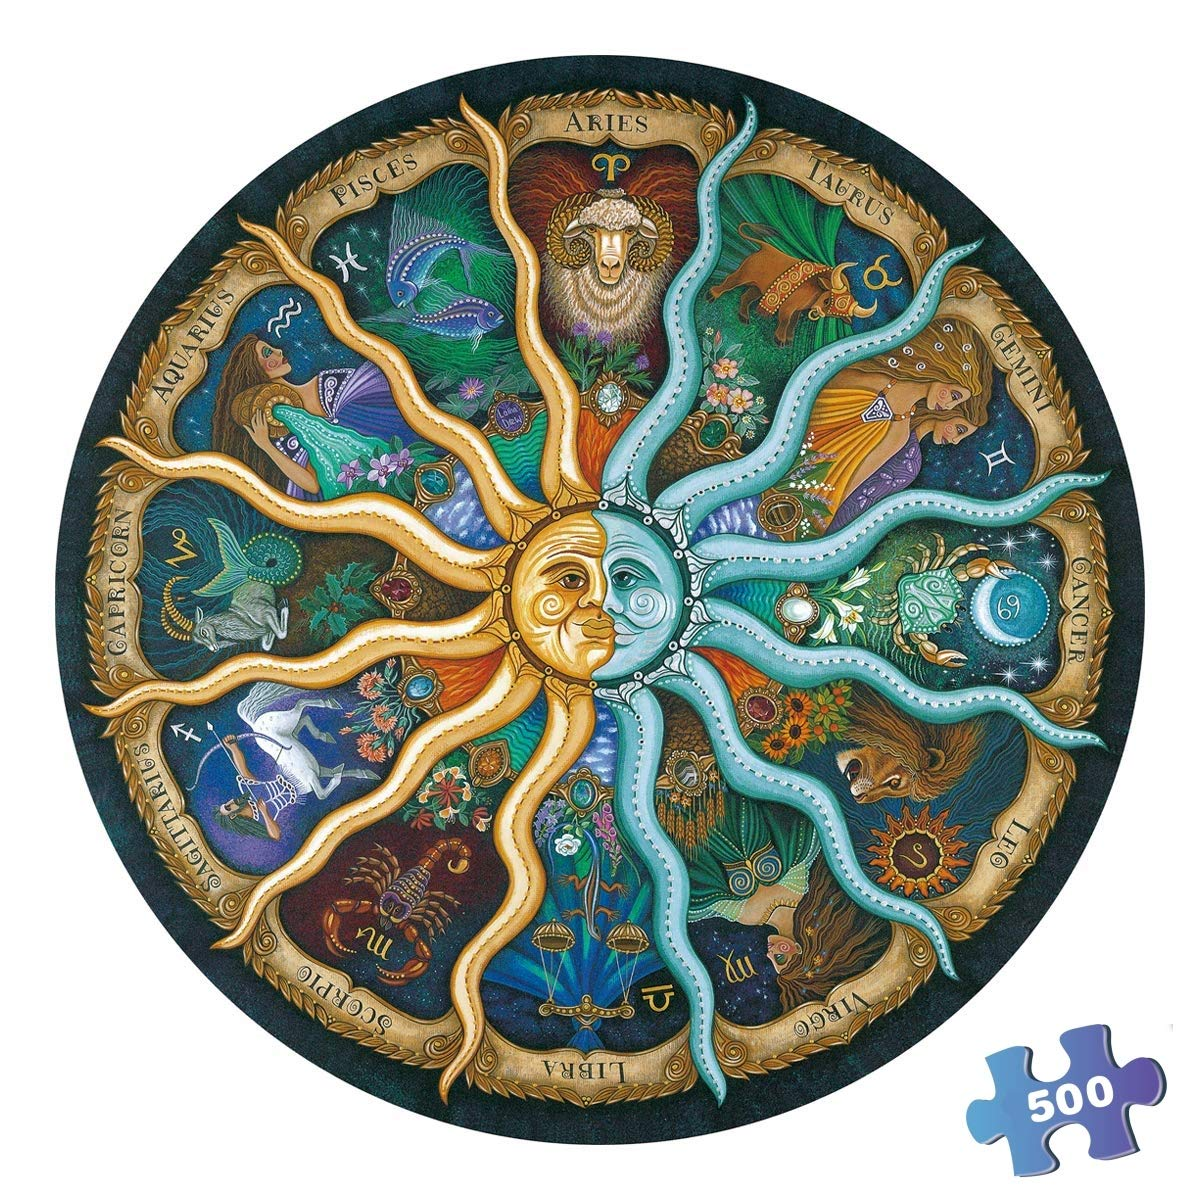 Round Jigsaw Puzzle 500 Piece for Adults- Zodiac Horoscope Puzzle- DIY Constellation Circular Jigsaw Puzzles Cool and Challenge